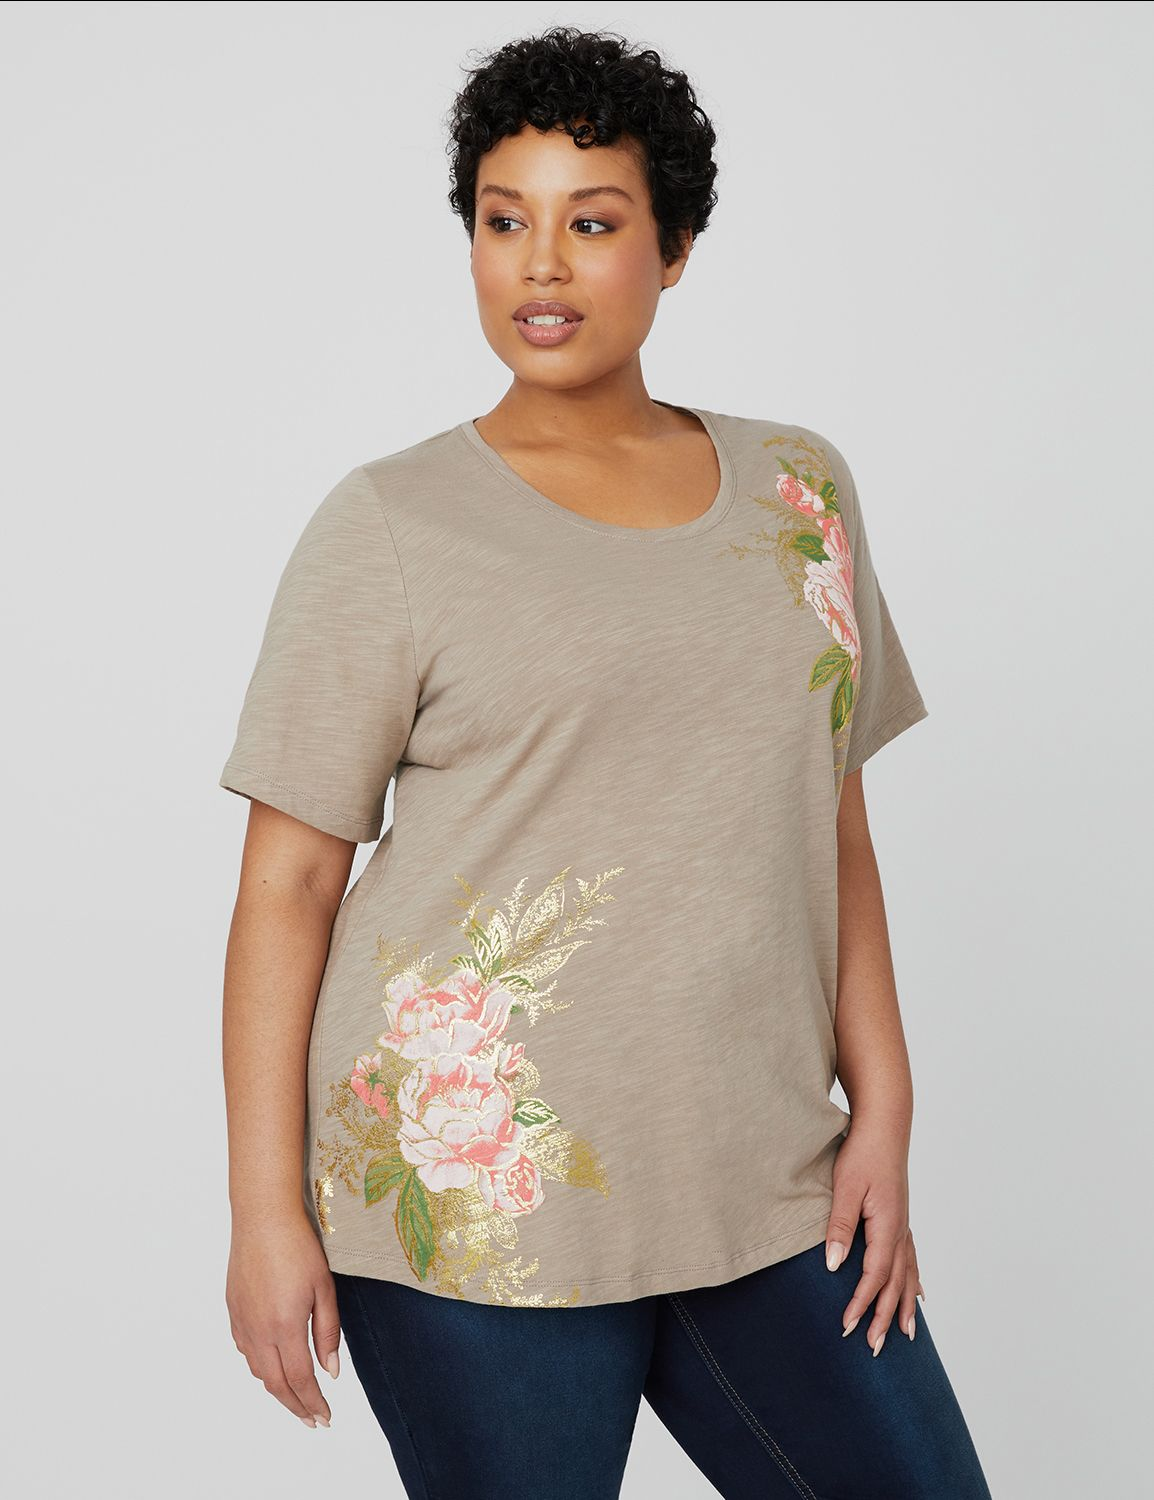 Tranquil Floral Tee 1088365 FLORAL SCREEN MP-300105258